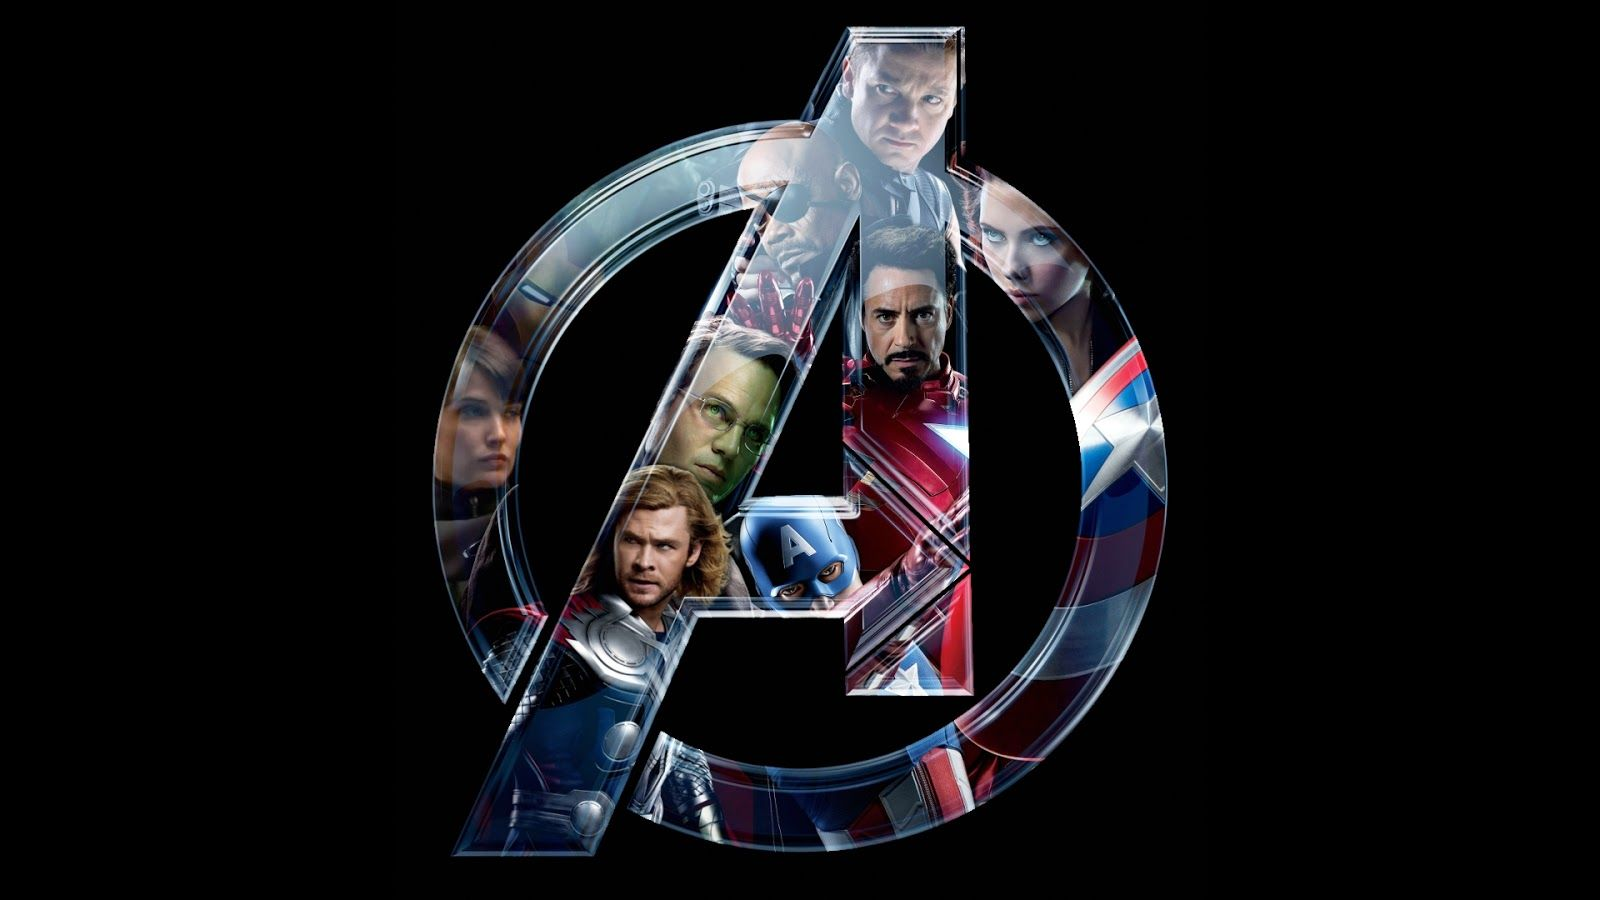 Pin By Bala Krishnan On Anime Pinterest Avengers Avengers